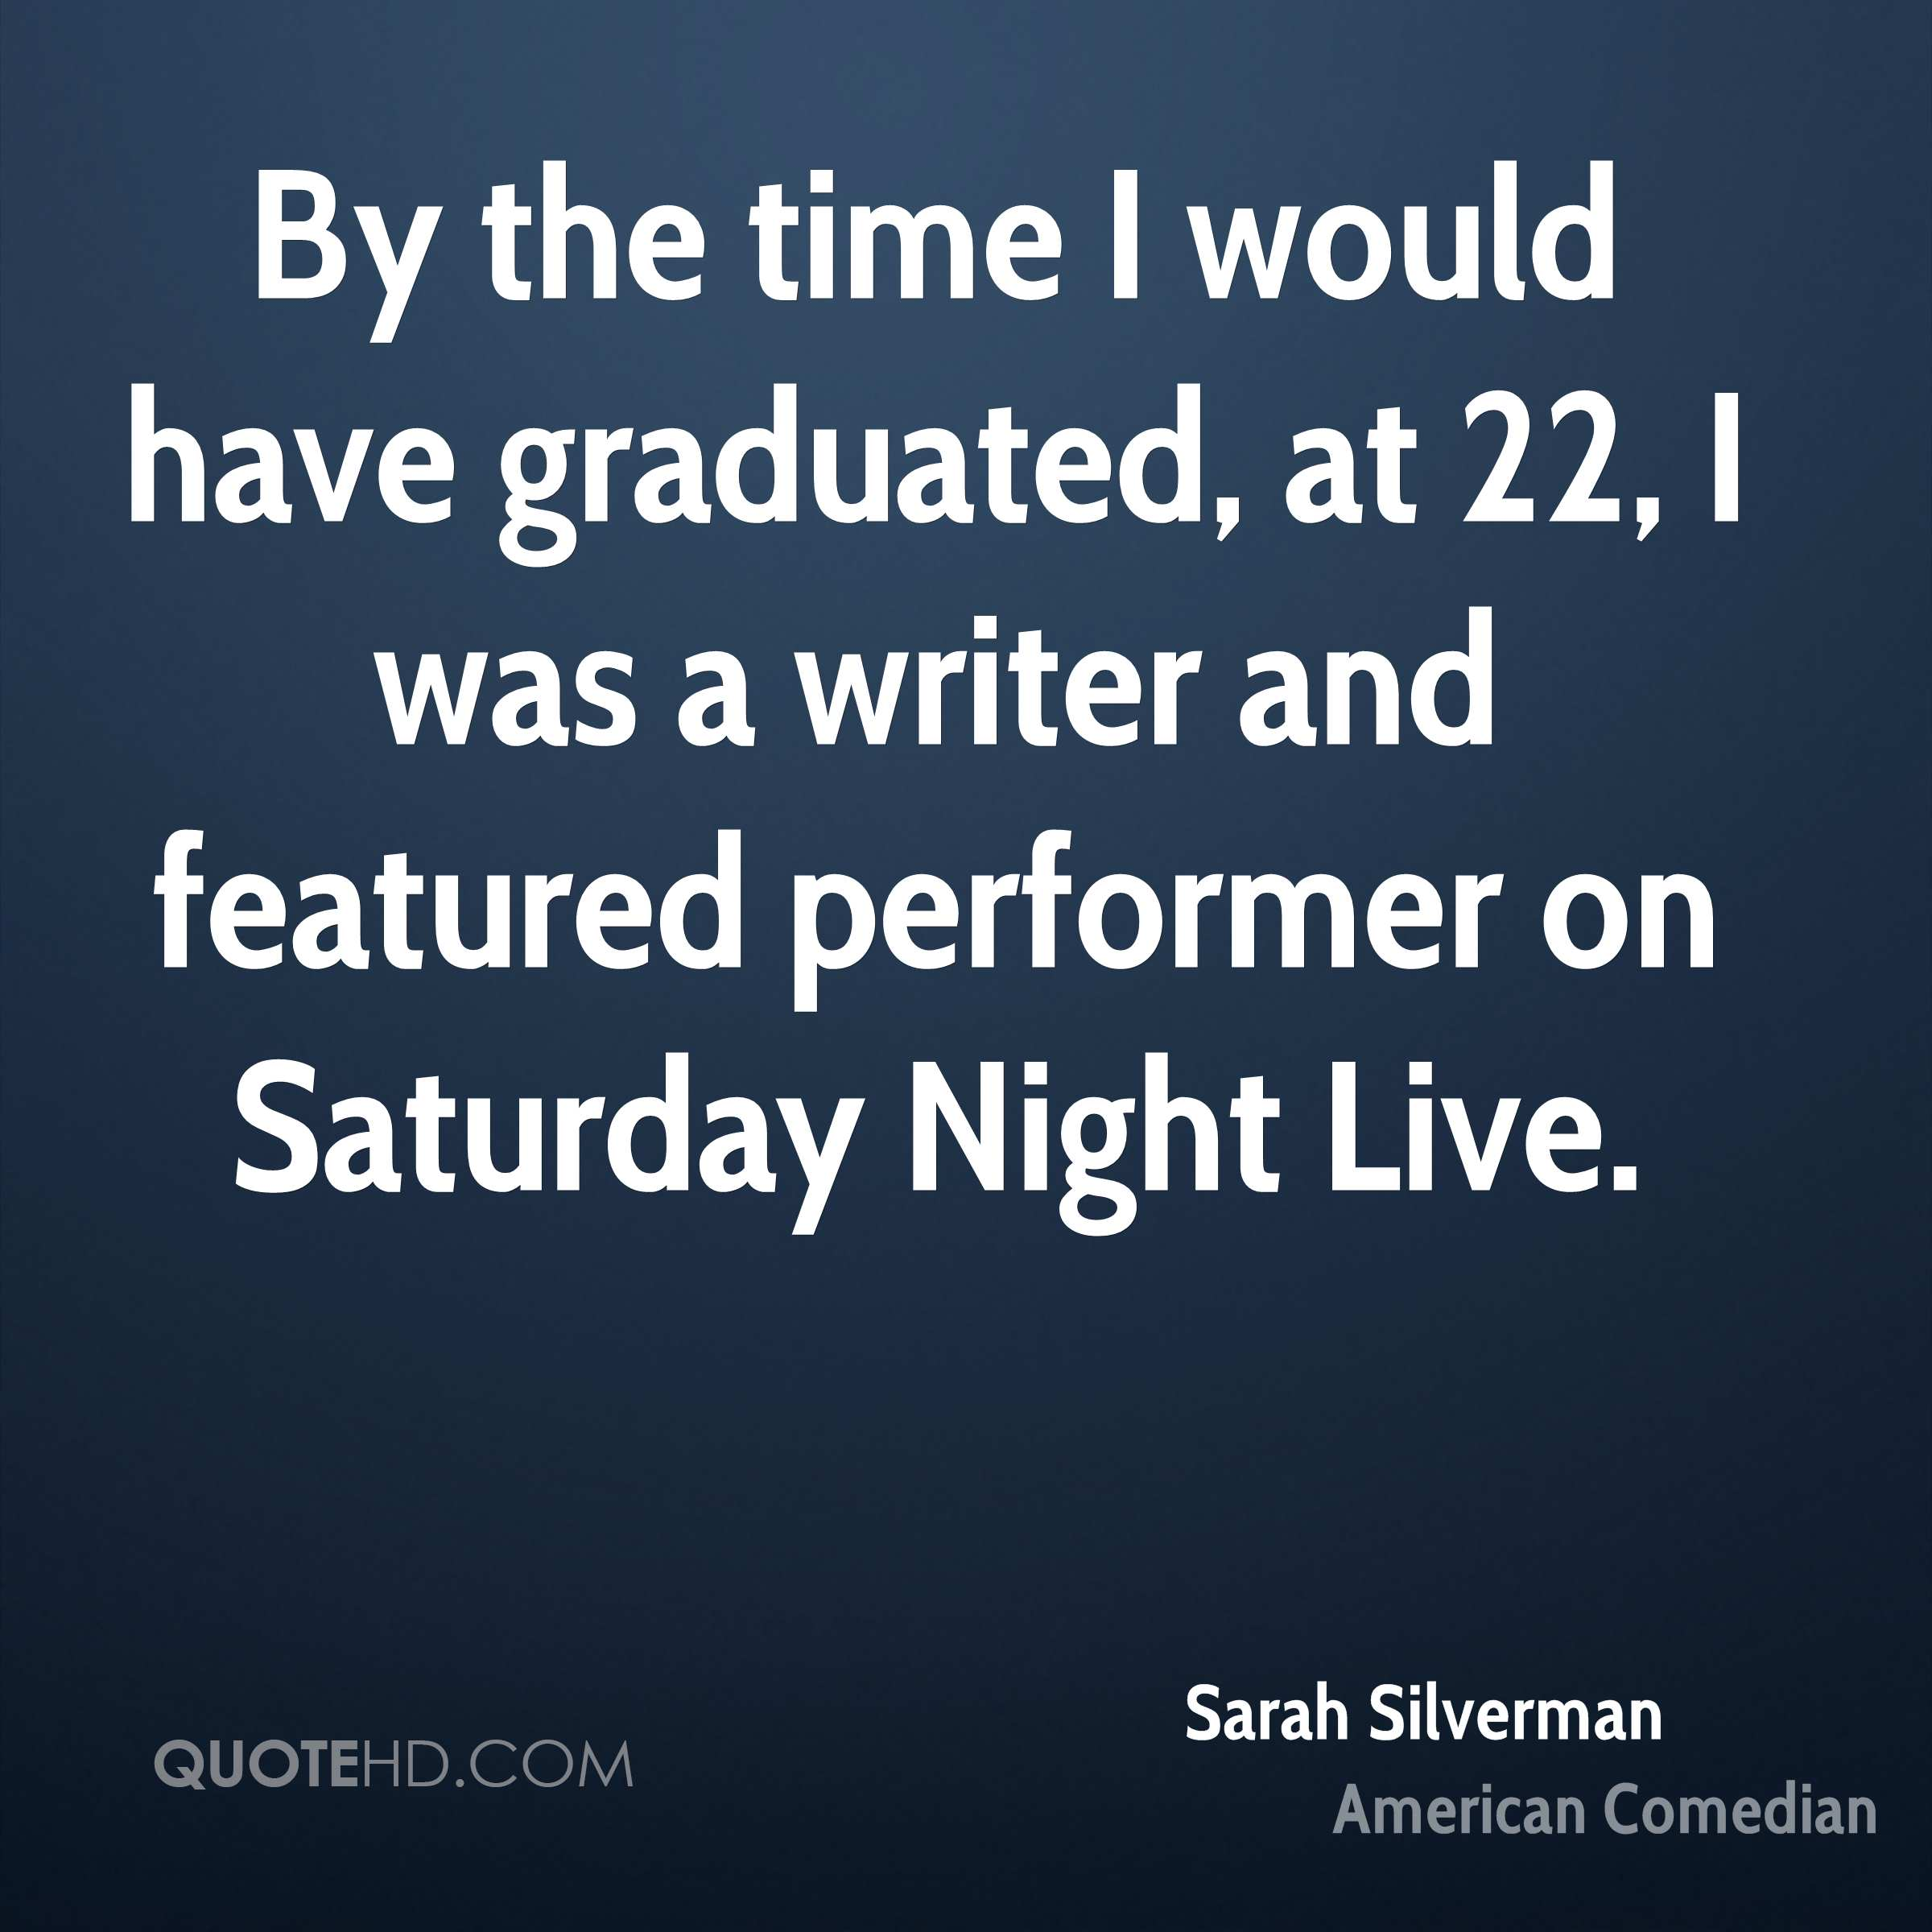 By the time I would have graduated, at 22, I was a writer and featured performer on Saturday Night Live.